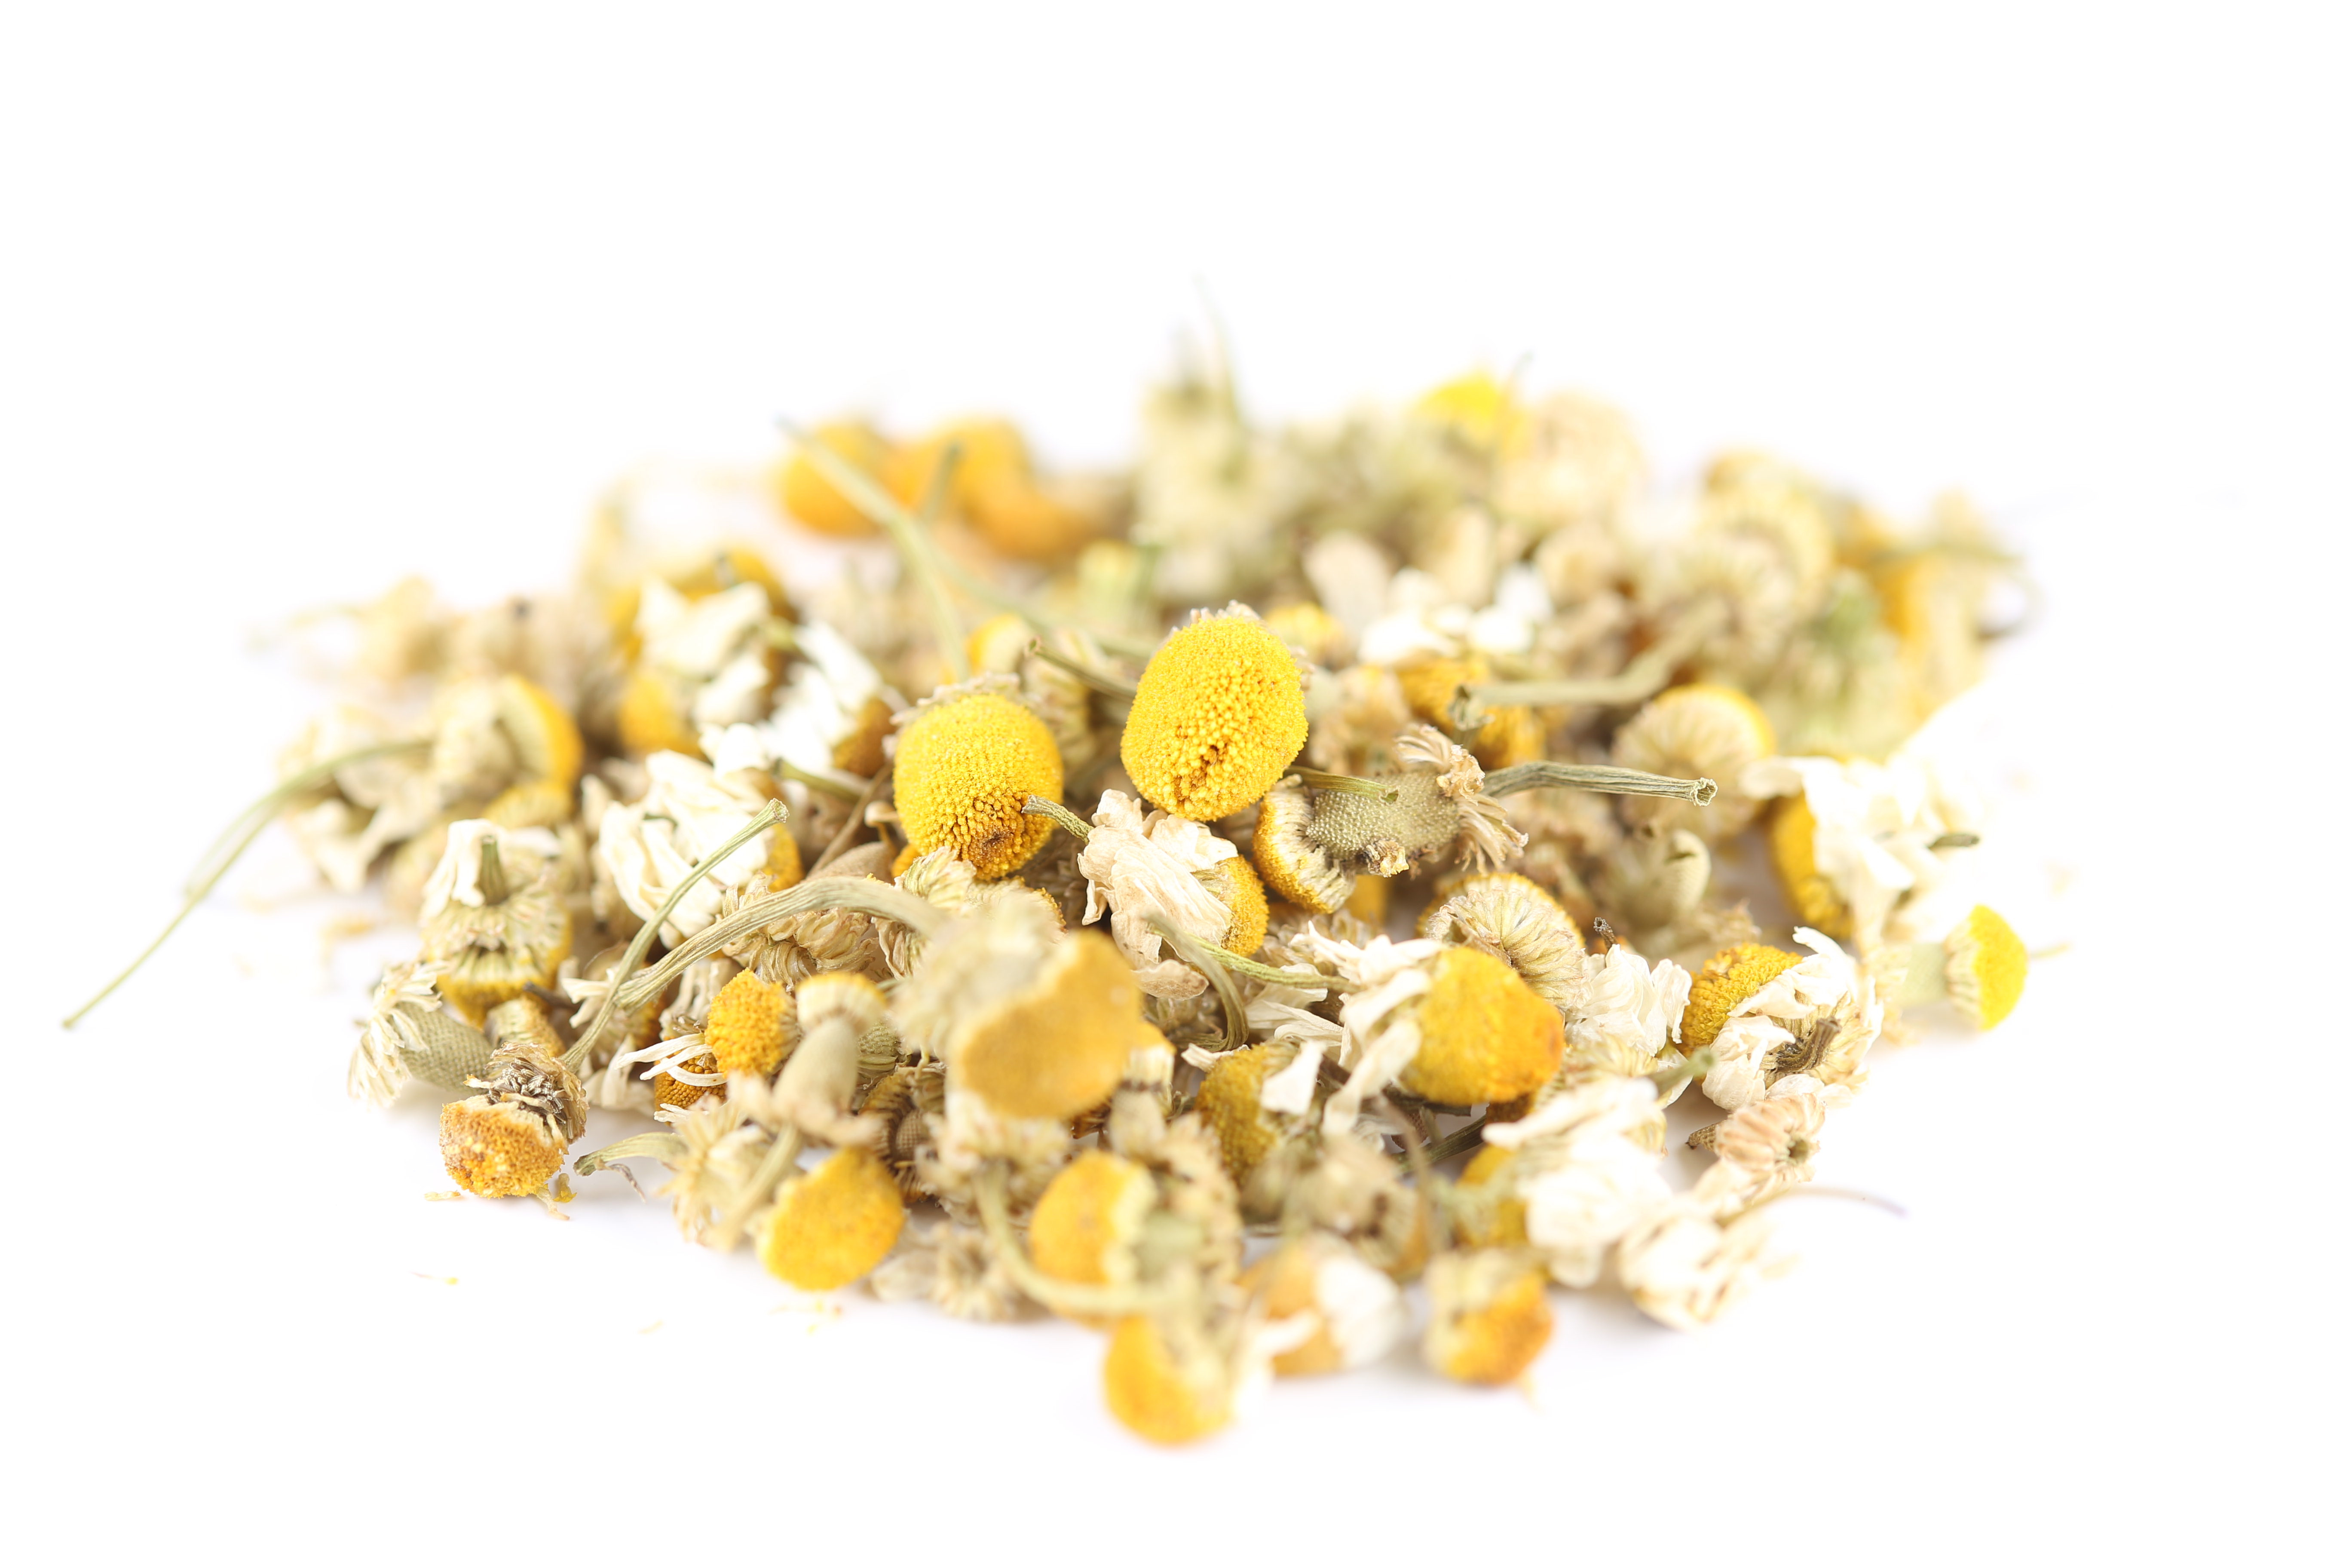 Chamomile High Quality Wallpapers